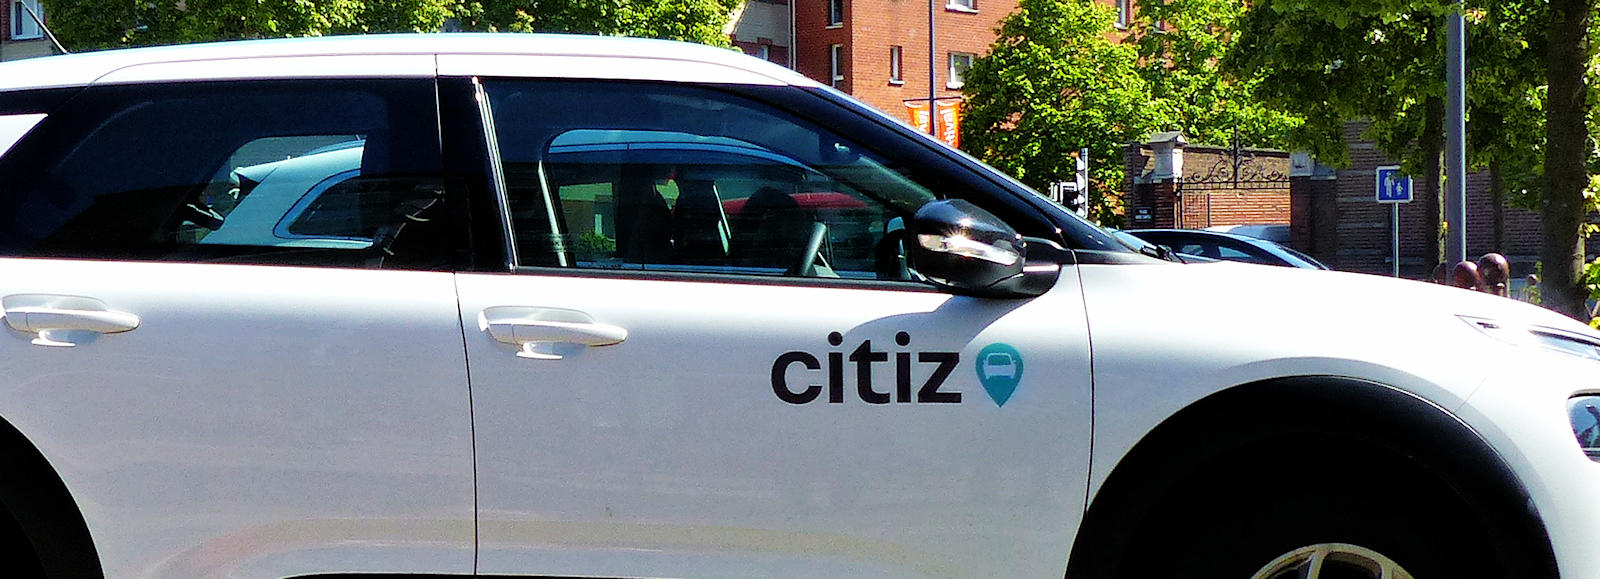 Station Autopartage Citiz Cavell, Tourcoing